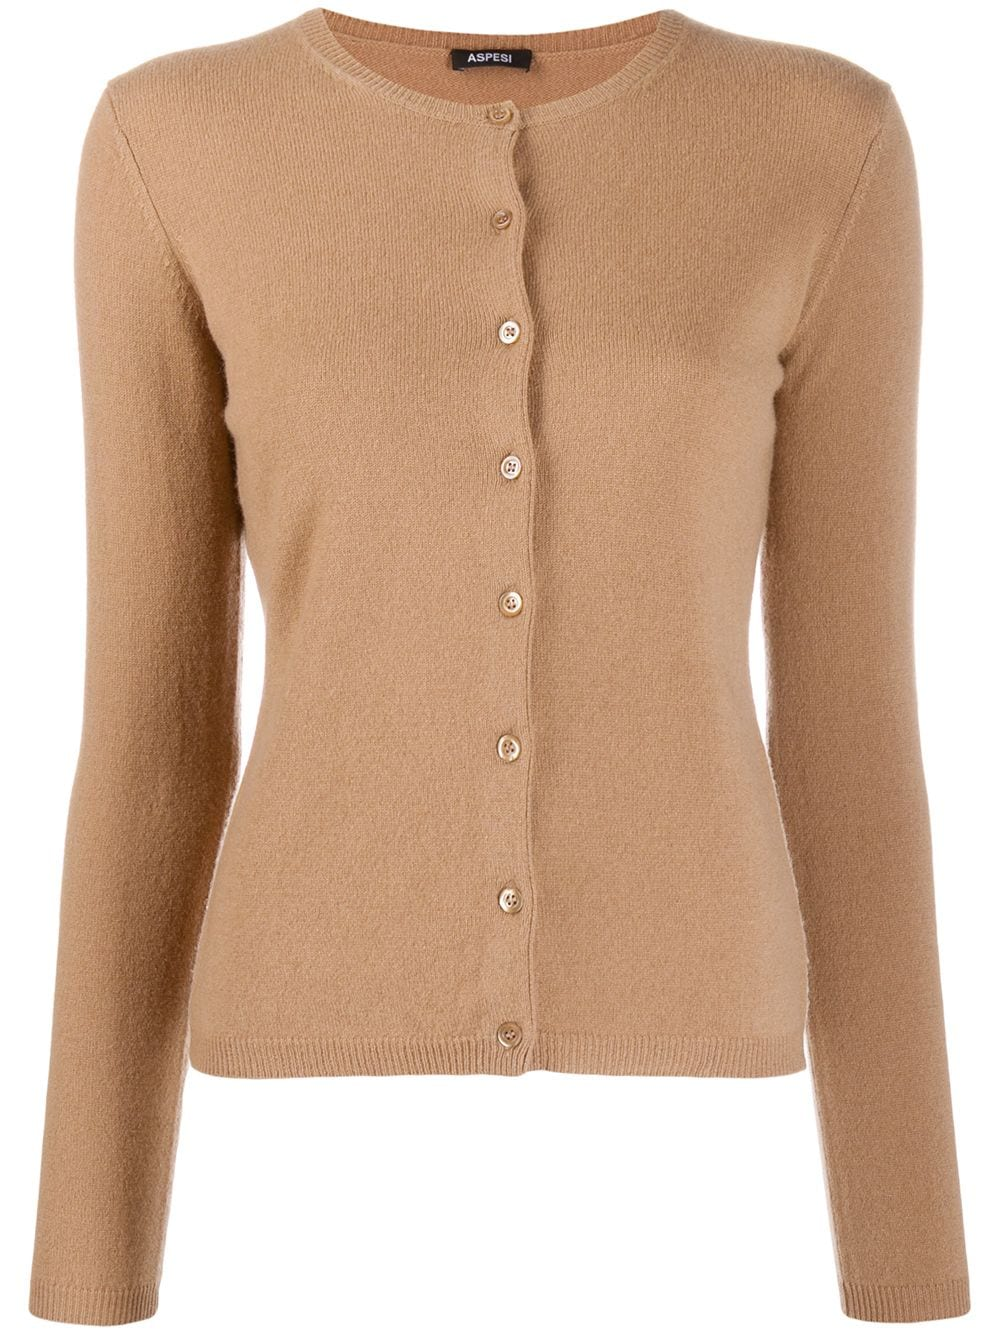 Brown cashmere slim-fit cardigan featuring a ribbed round neck ALBERTO ASPESI |  | 3355-456701088